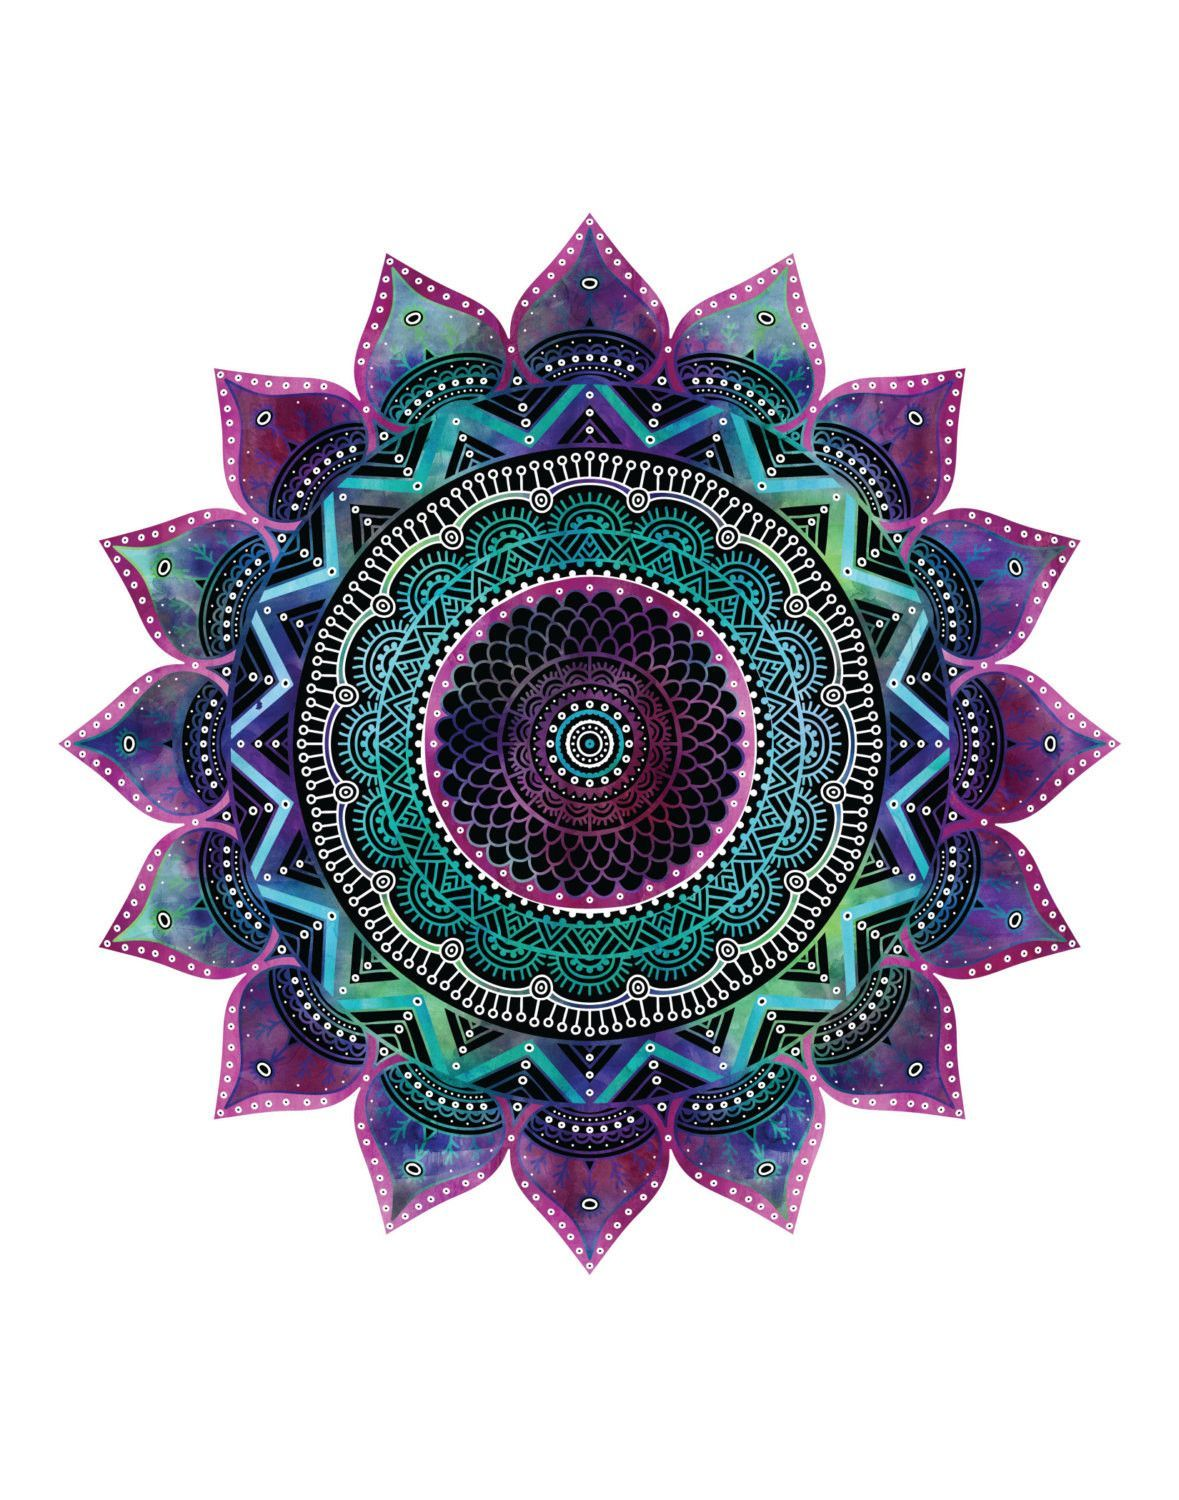 This mandala print will bring a touch of joy and ...